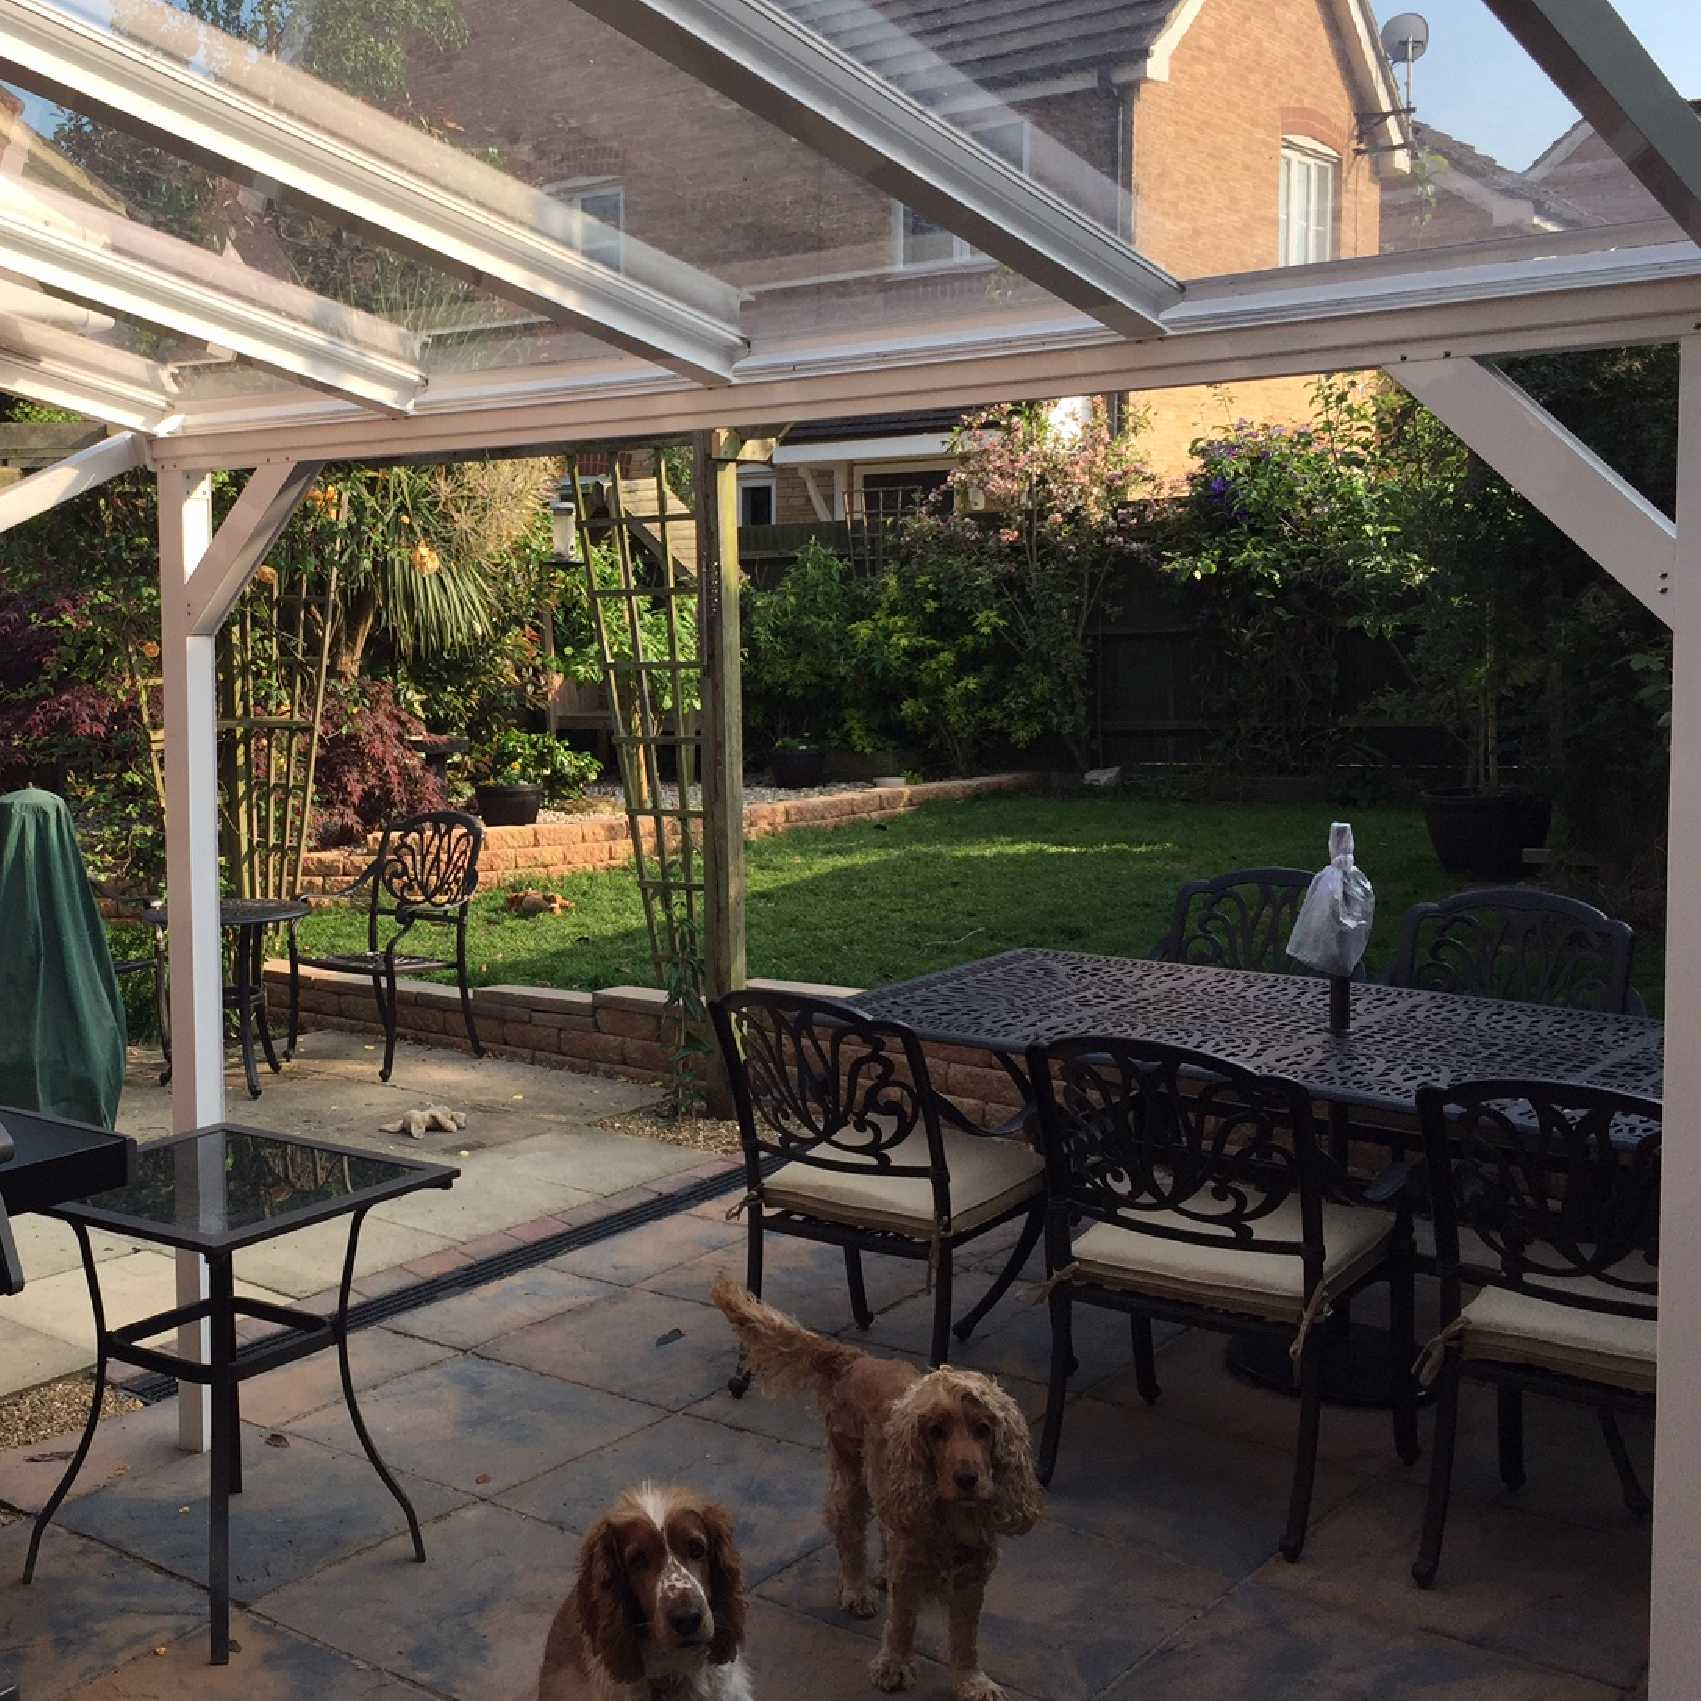 Affordable Omega Smart Lean-To Canopy with 6mm Glass Clear Plate Polycarbonate Glazing - 4.2m (W) x 2.5m (P), (3) Supporting Posts